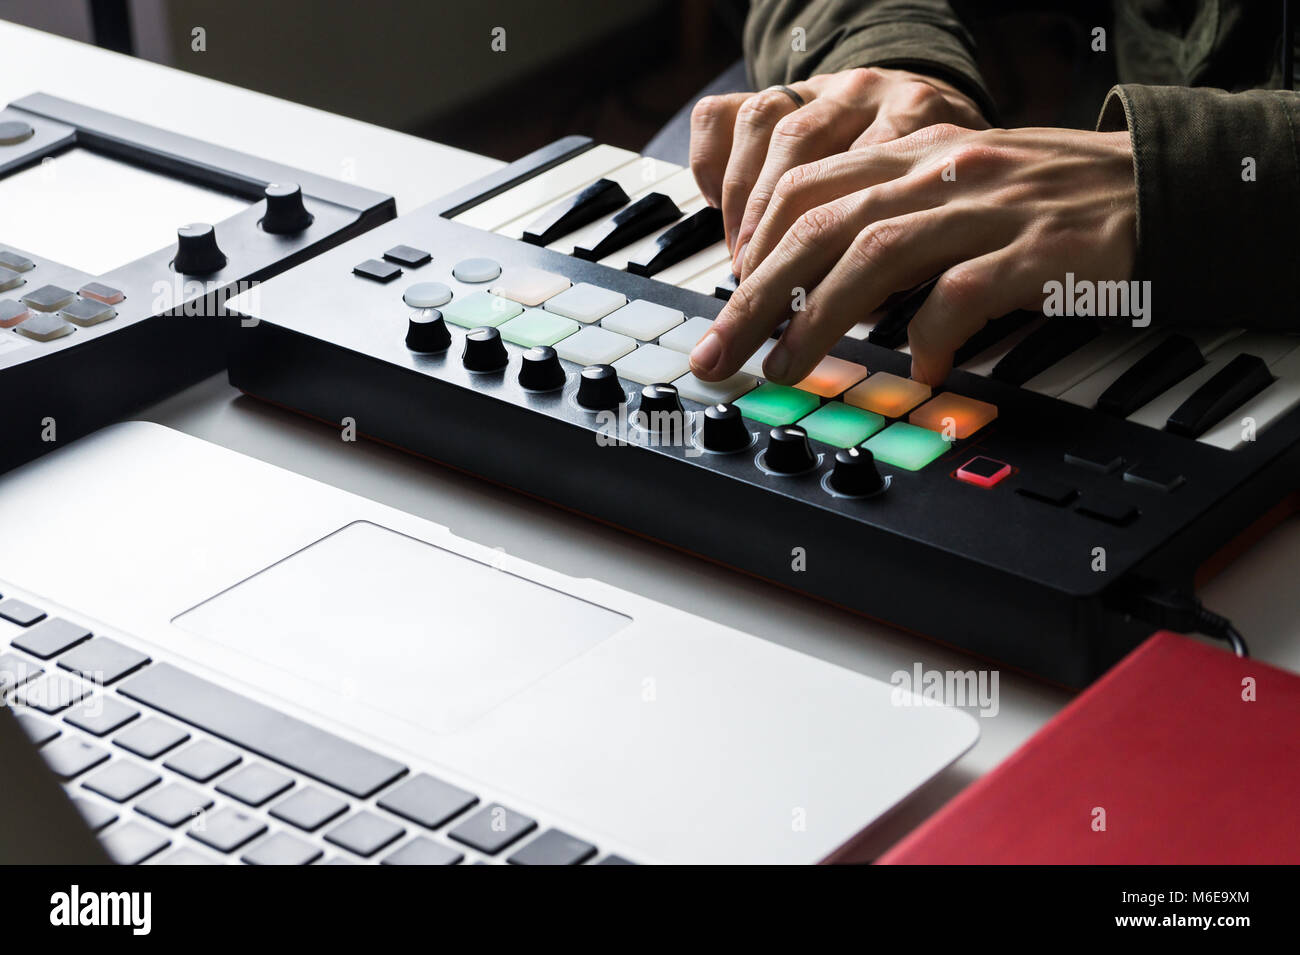 Recording electronic music track with portable midi keyboard on laptop computer in home studio - Stock Image